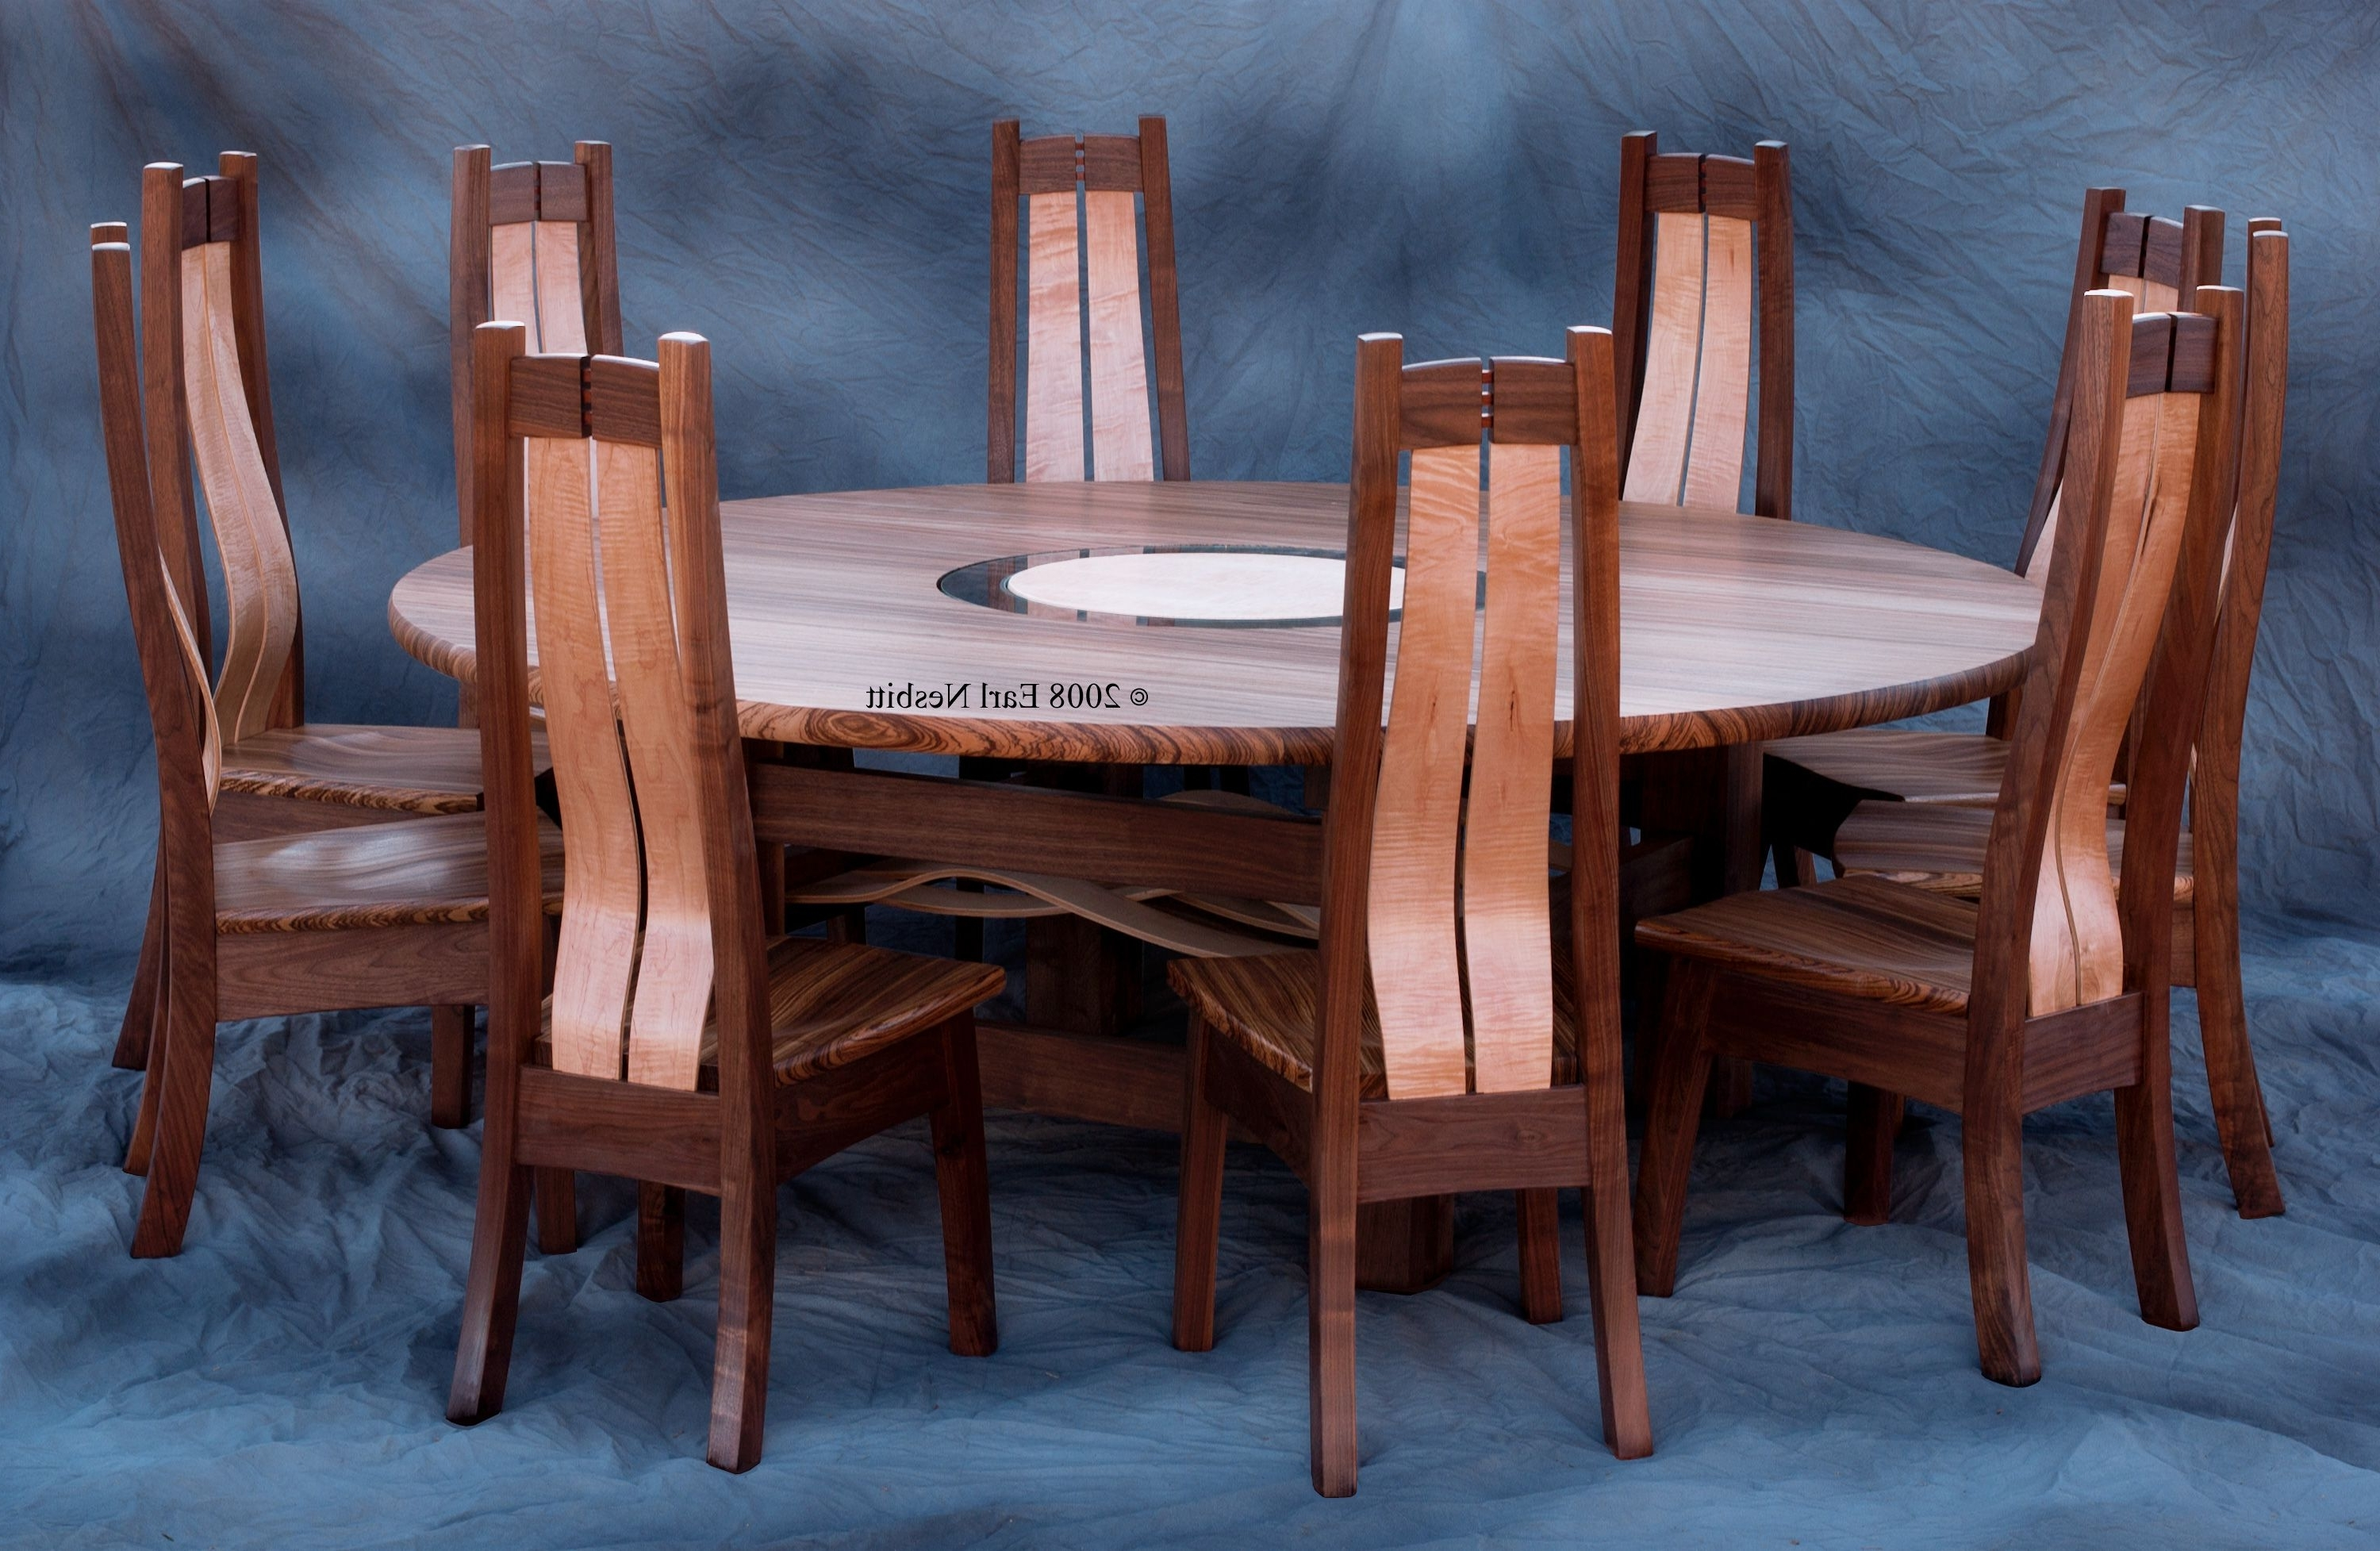 Fashionable Handmade Round Dining Table Or Conference Table With 10 Chairs In Dining Table And 10 Chairs (View 12 of 25)